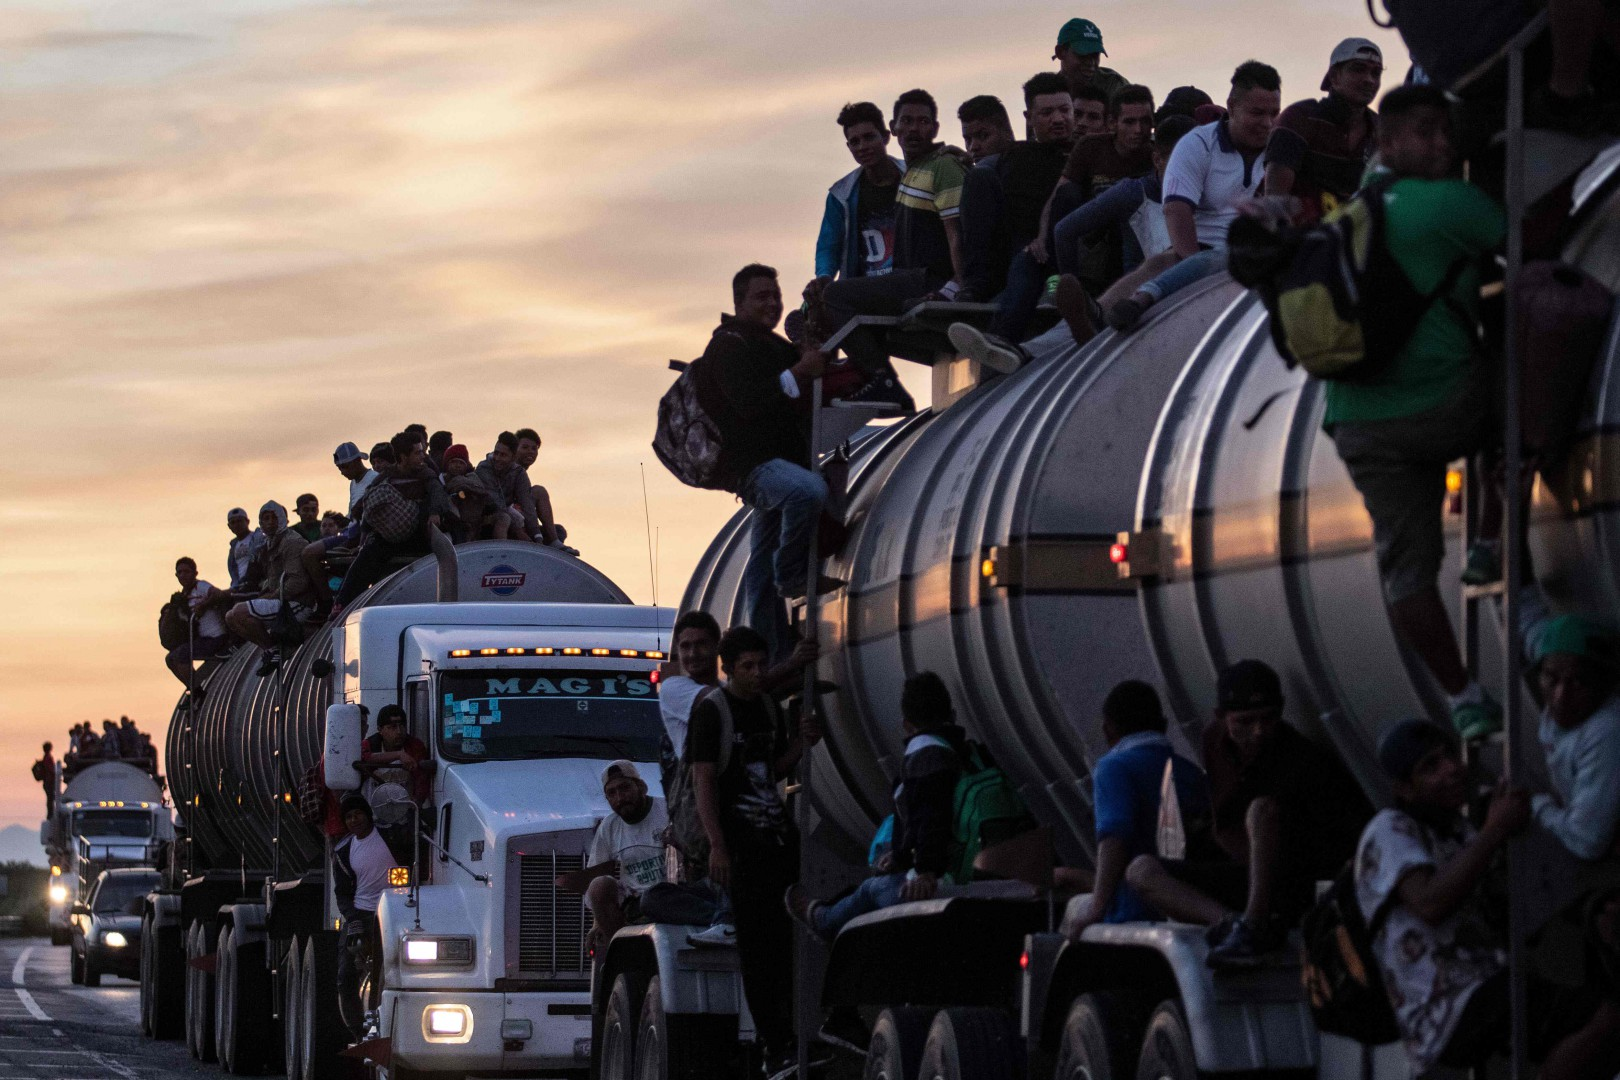 TOPSHOT - A truck carrying mostly Honduran migrants taking part in a caravan heading to the US drives from Santiago Niltepec to Juchitan, near the town of La Blanca in Oaxaca State, Mexico, on October 30, 2018. - The Pentagon is deploying 5,200 active-duty troops to beef up security along the US-Mexico border, officials announced Monday, in a bid to prevent a caravan of Central American migrants from illegally crossing the frontier. (Photo by GUILLERMO ARIAS / AFP)